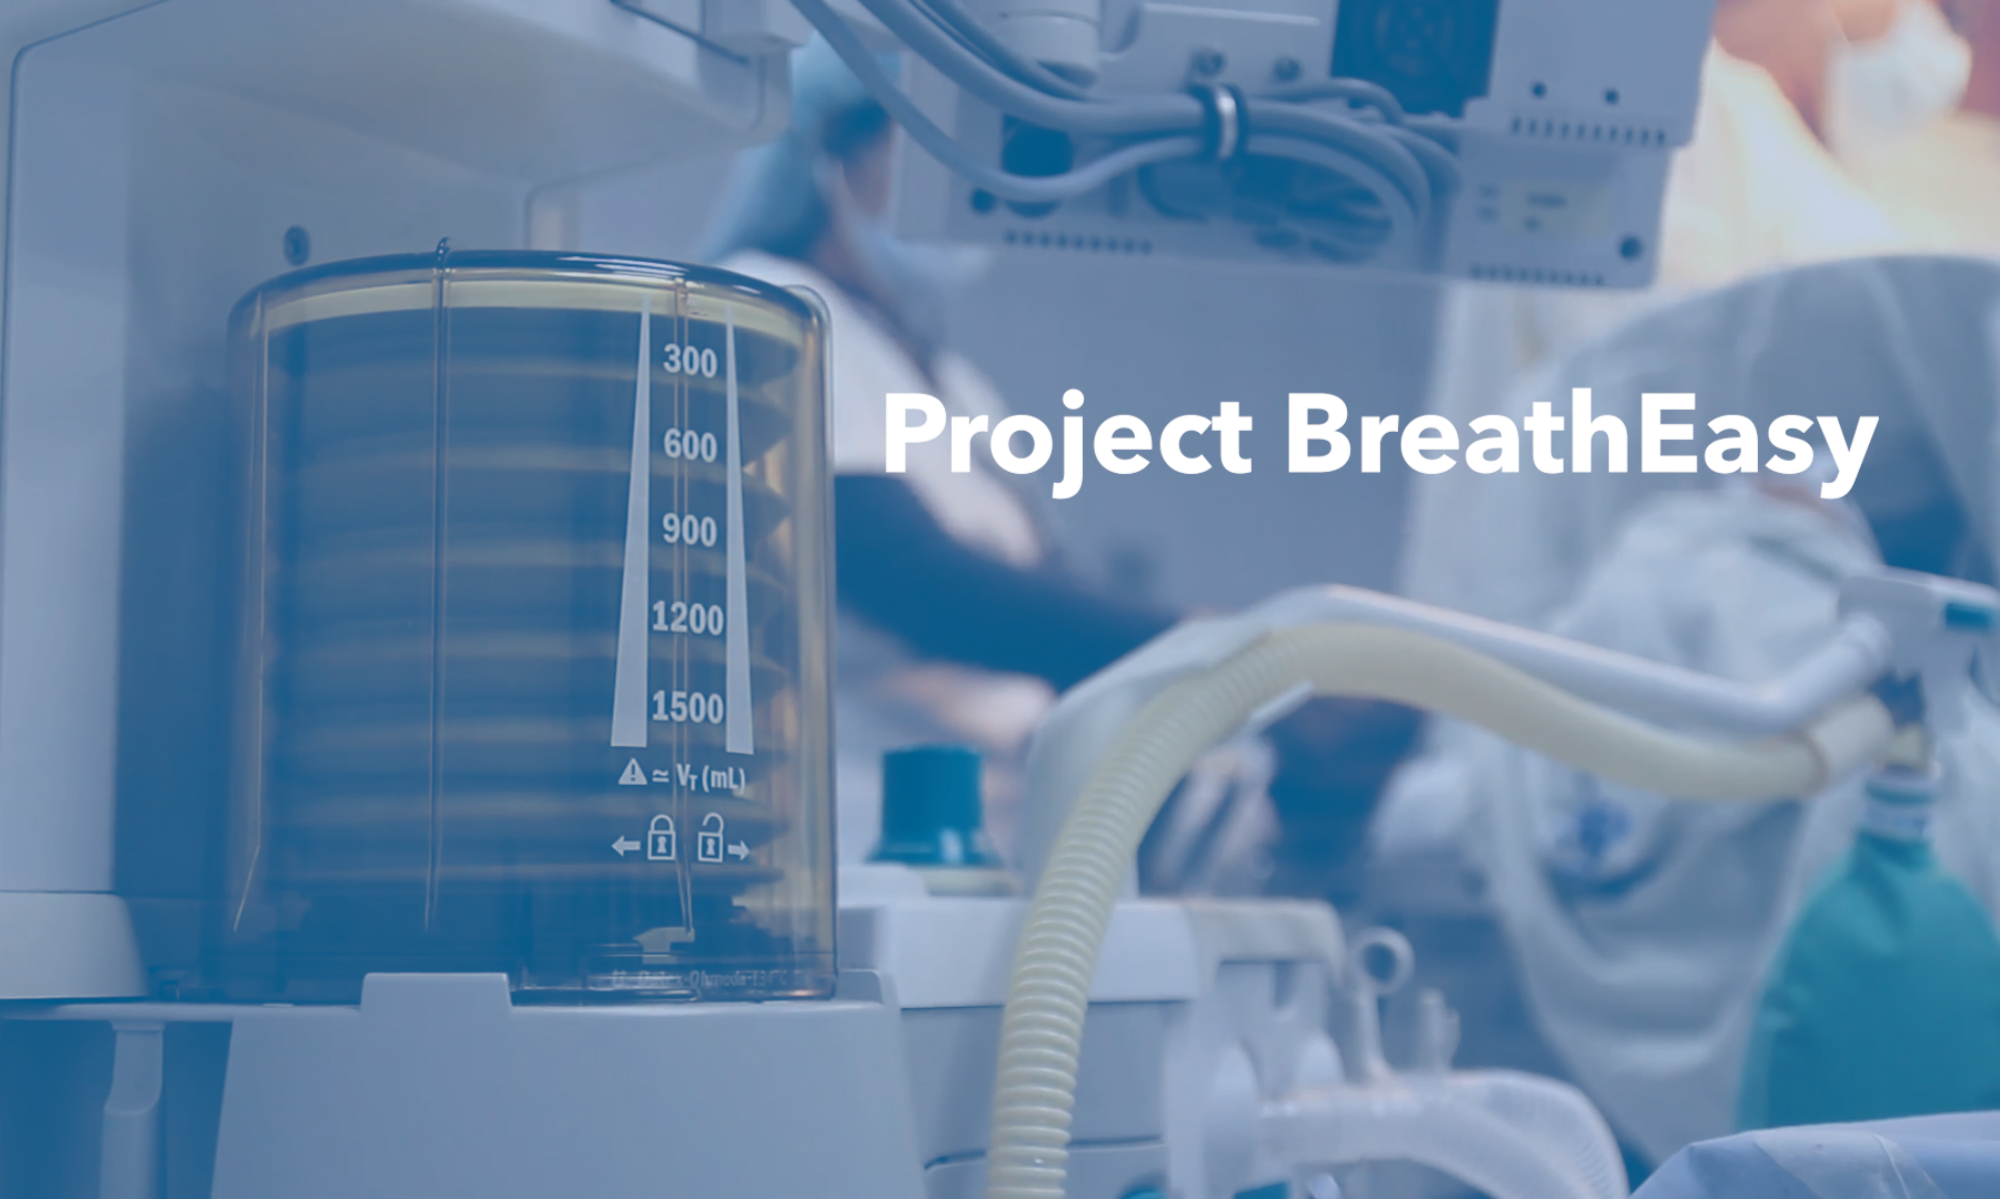 Project BreathEasy